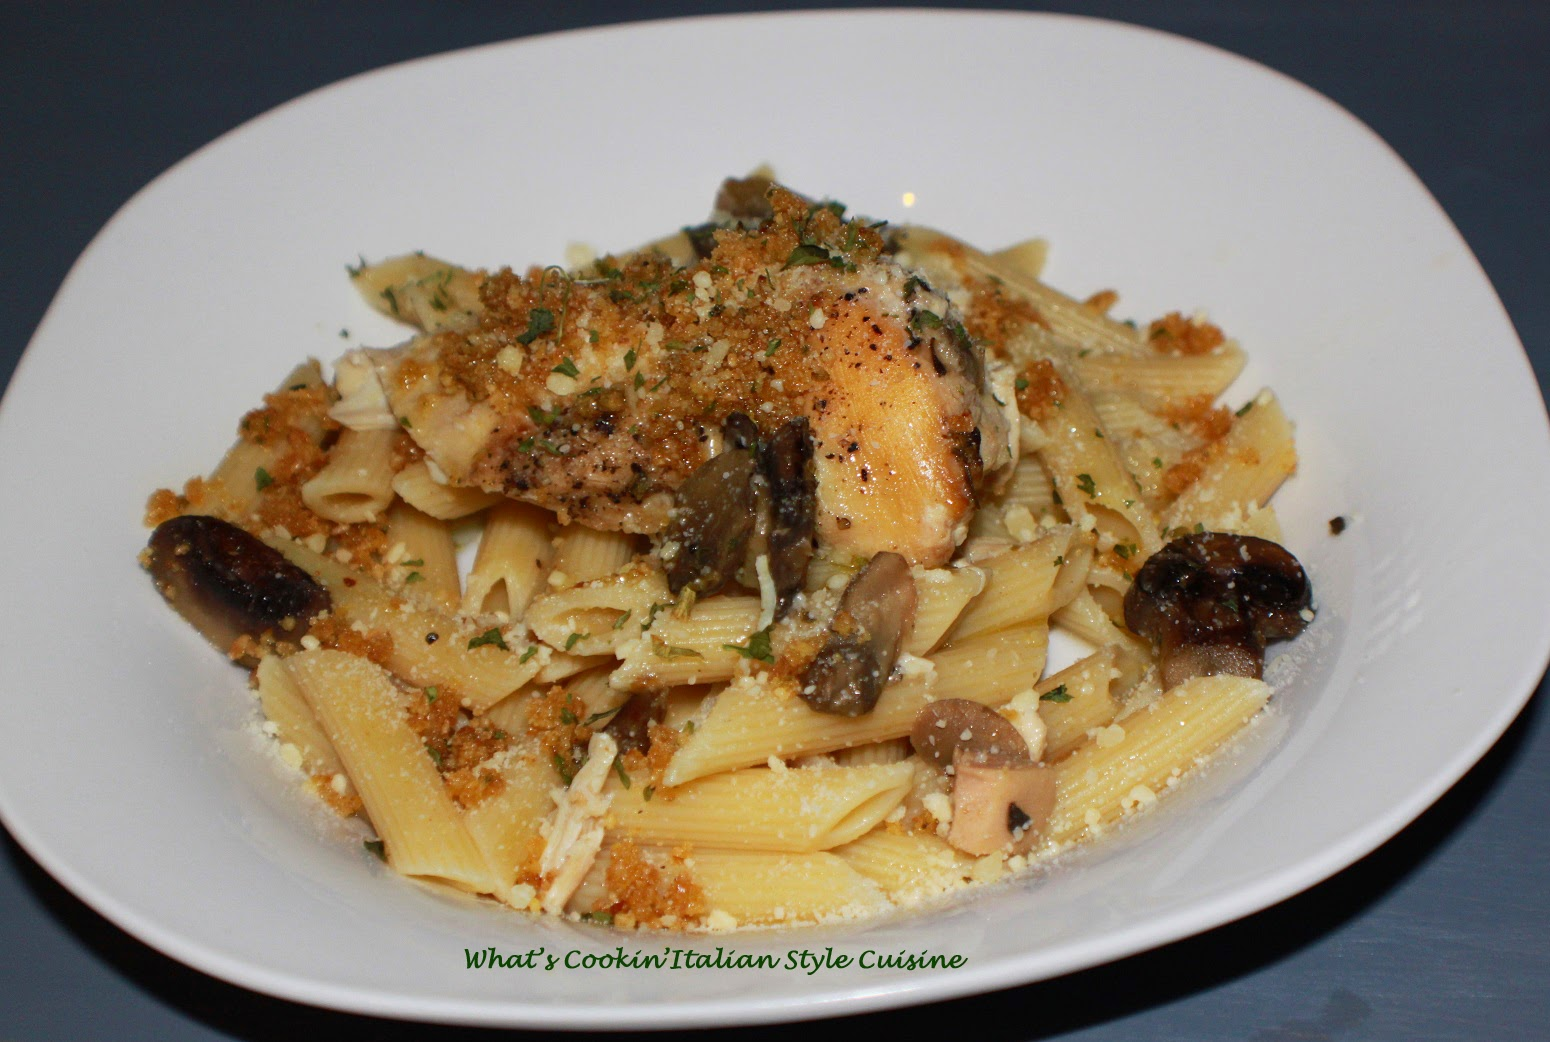 ... Style Cuisine: Slow Cooker Chicken Penne with Fried Breadcrumbs Recipe